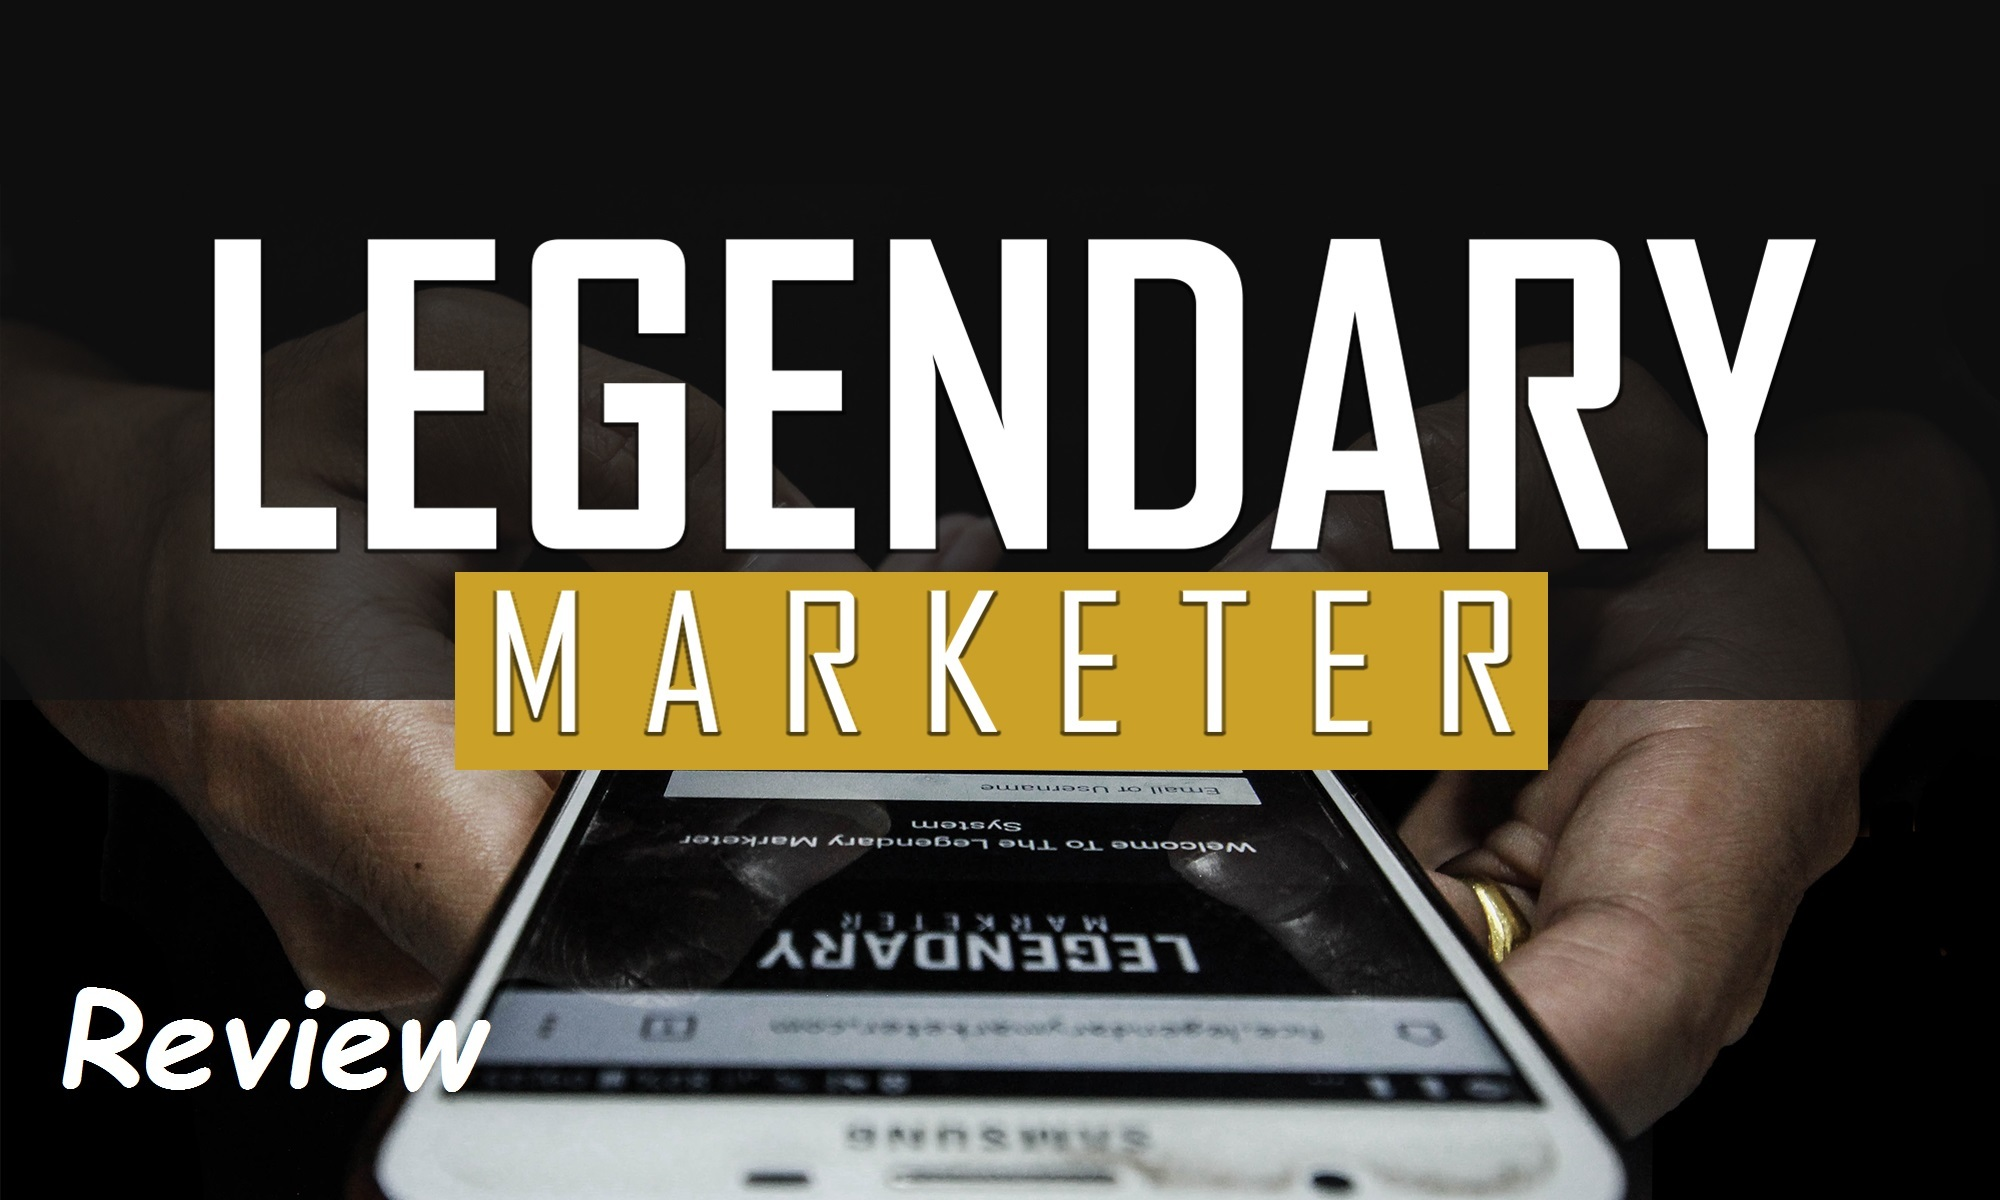 Legendary Marketer Internet Marketing Program Price Ebay